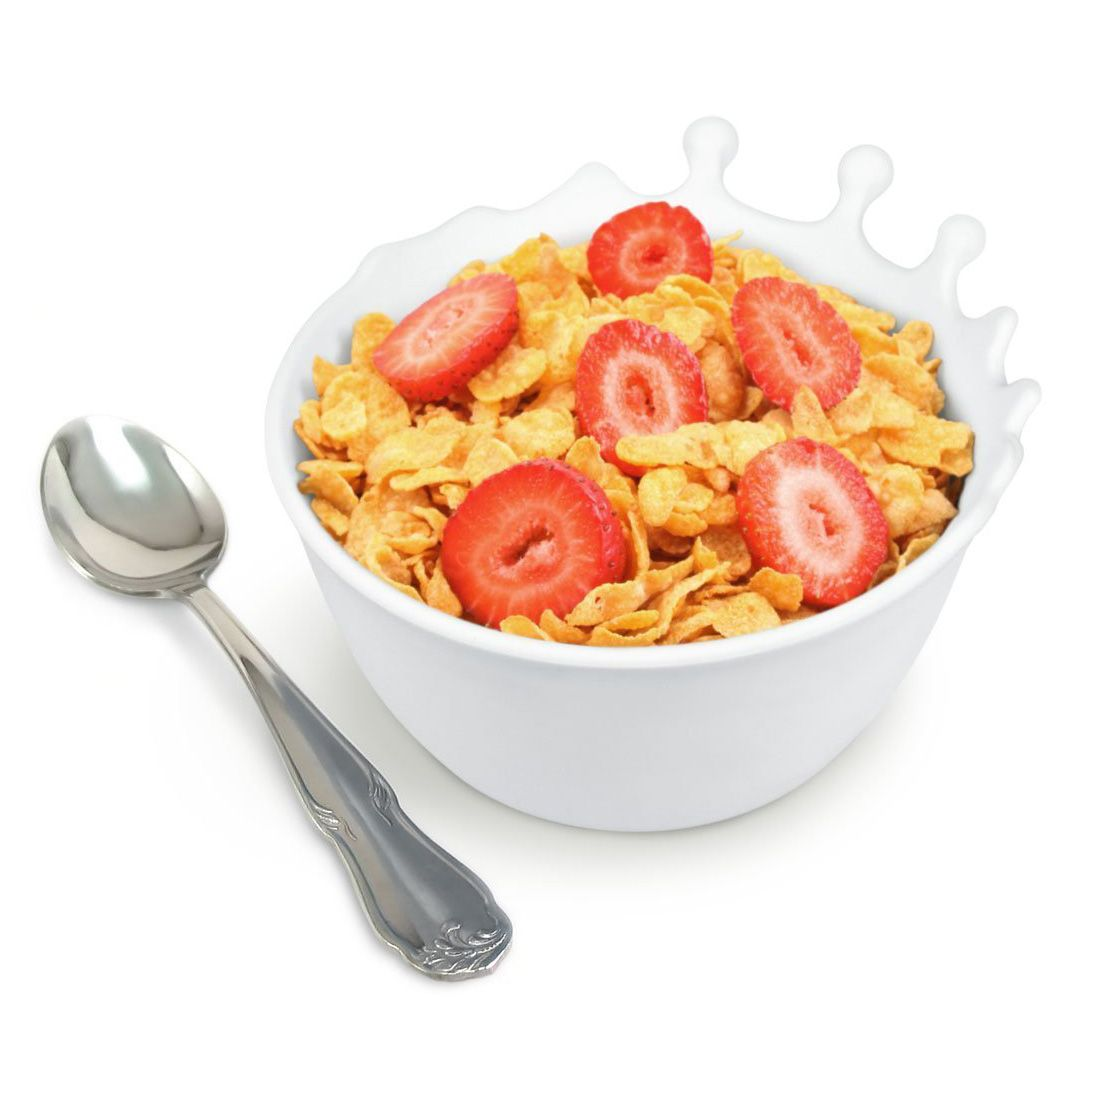 Soft, Flexible And Unbreakable Cereal Bowl